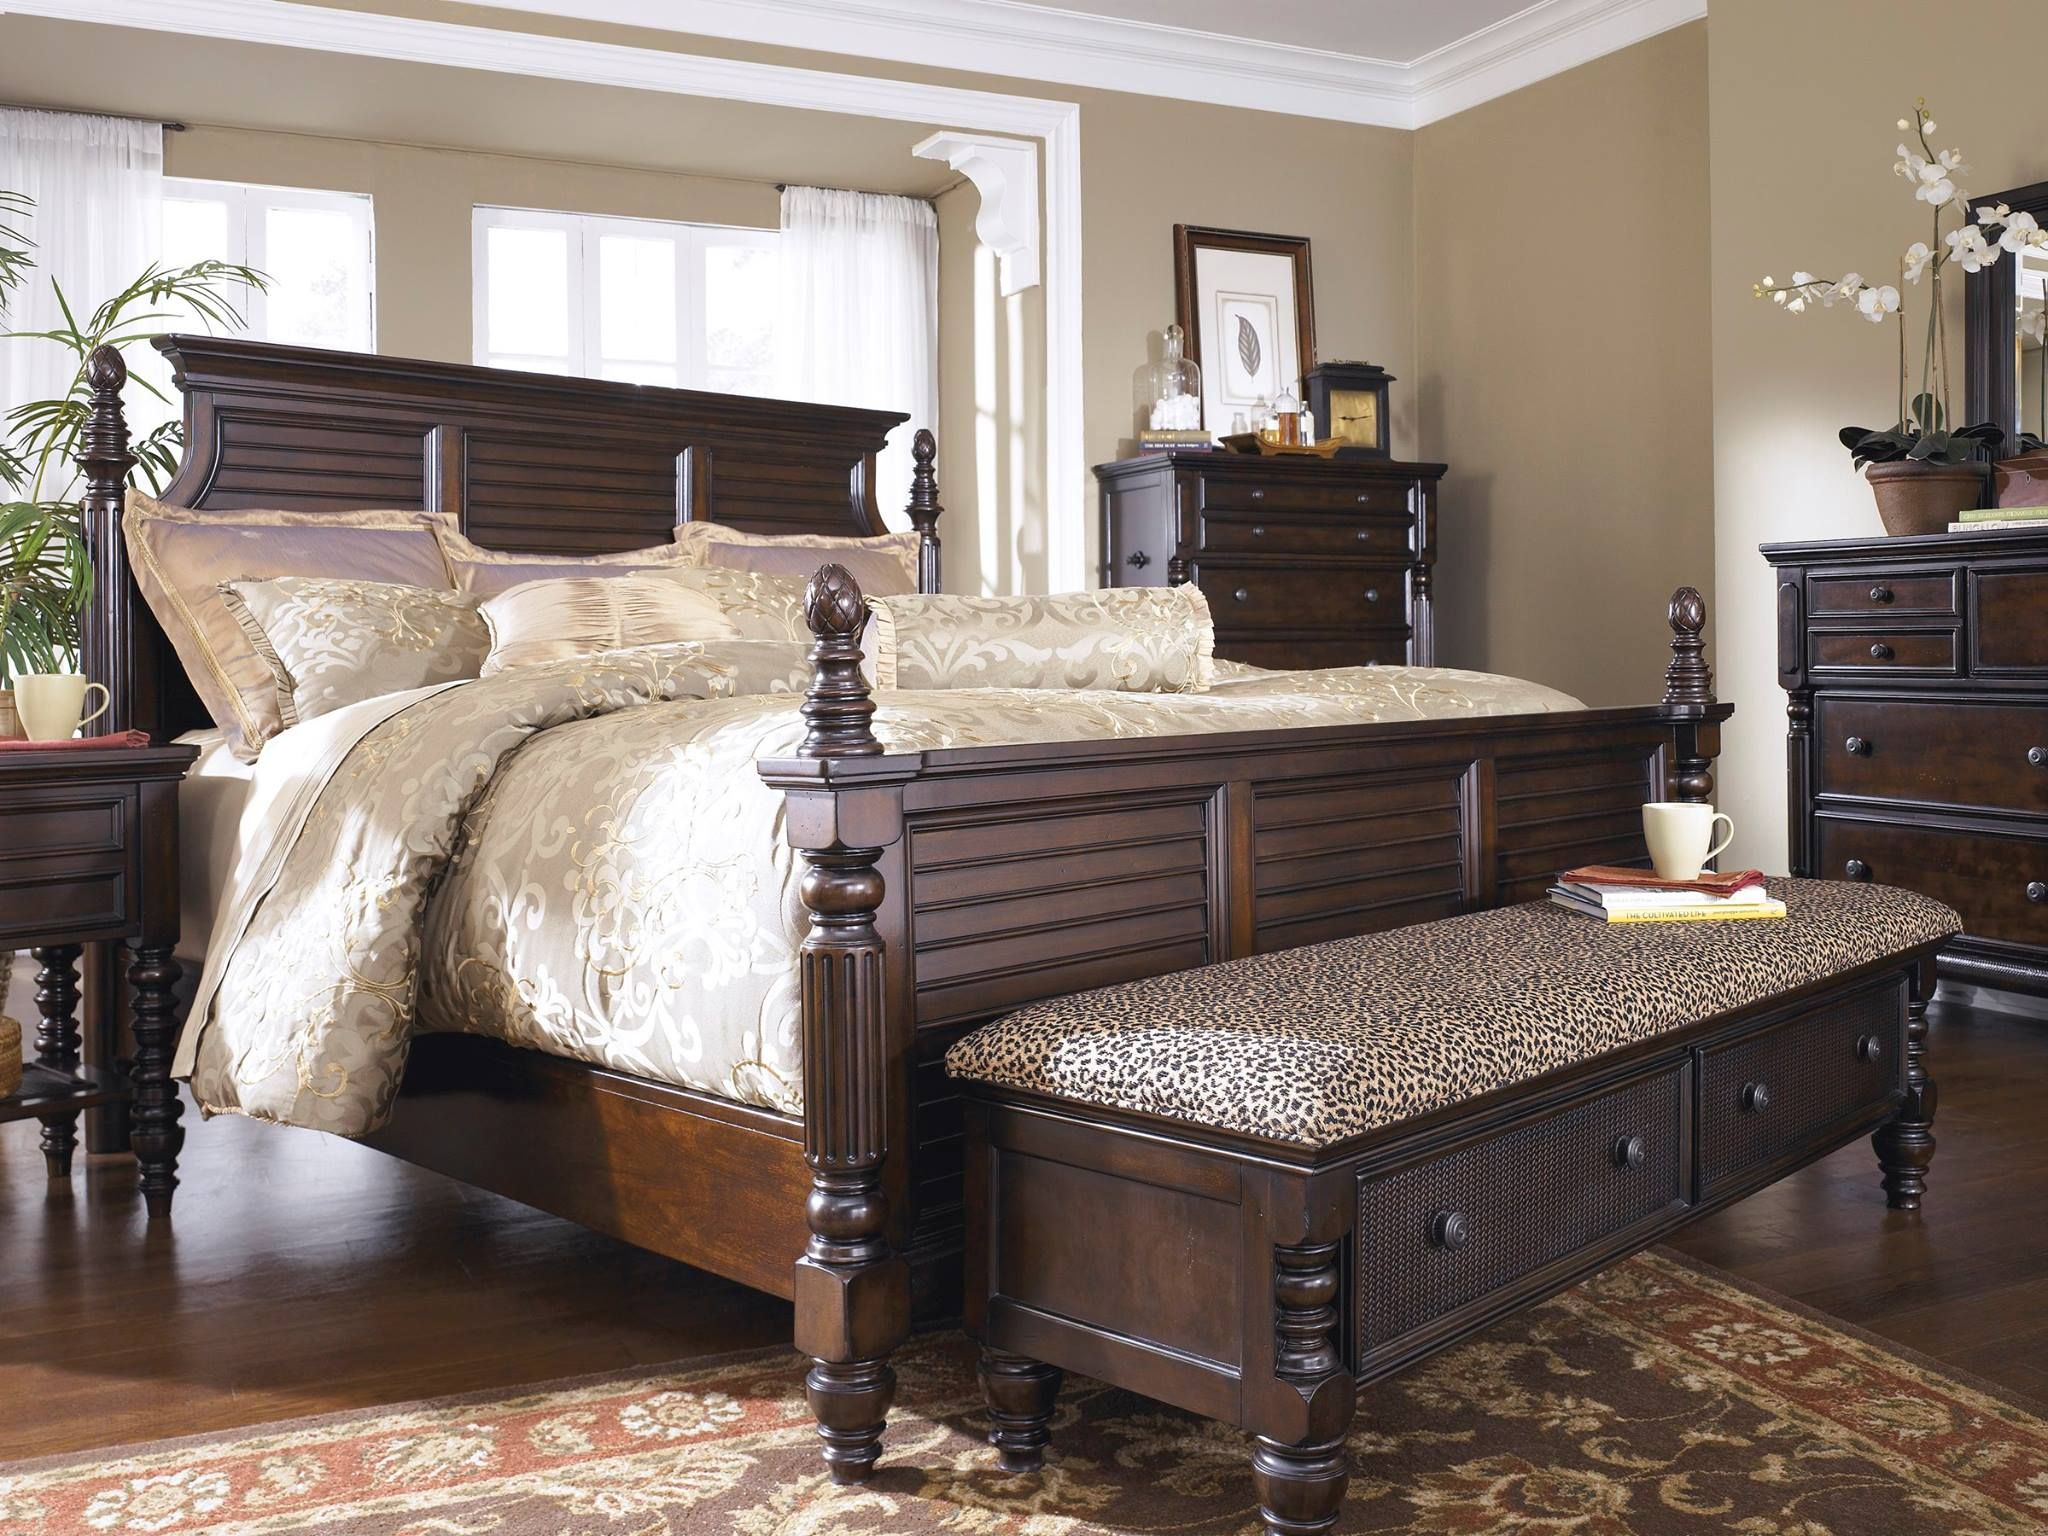 Ashley Furniture Homestore In Bloomington Il Ask For Erin intended for Furniture Stores Bloomington Il